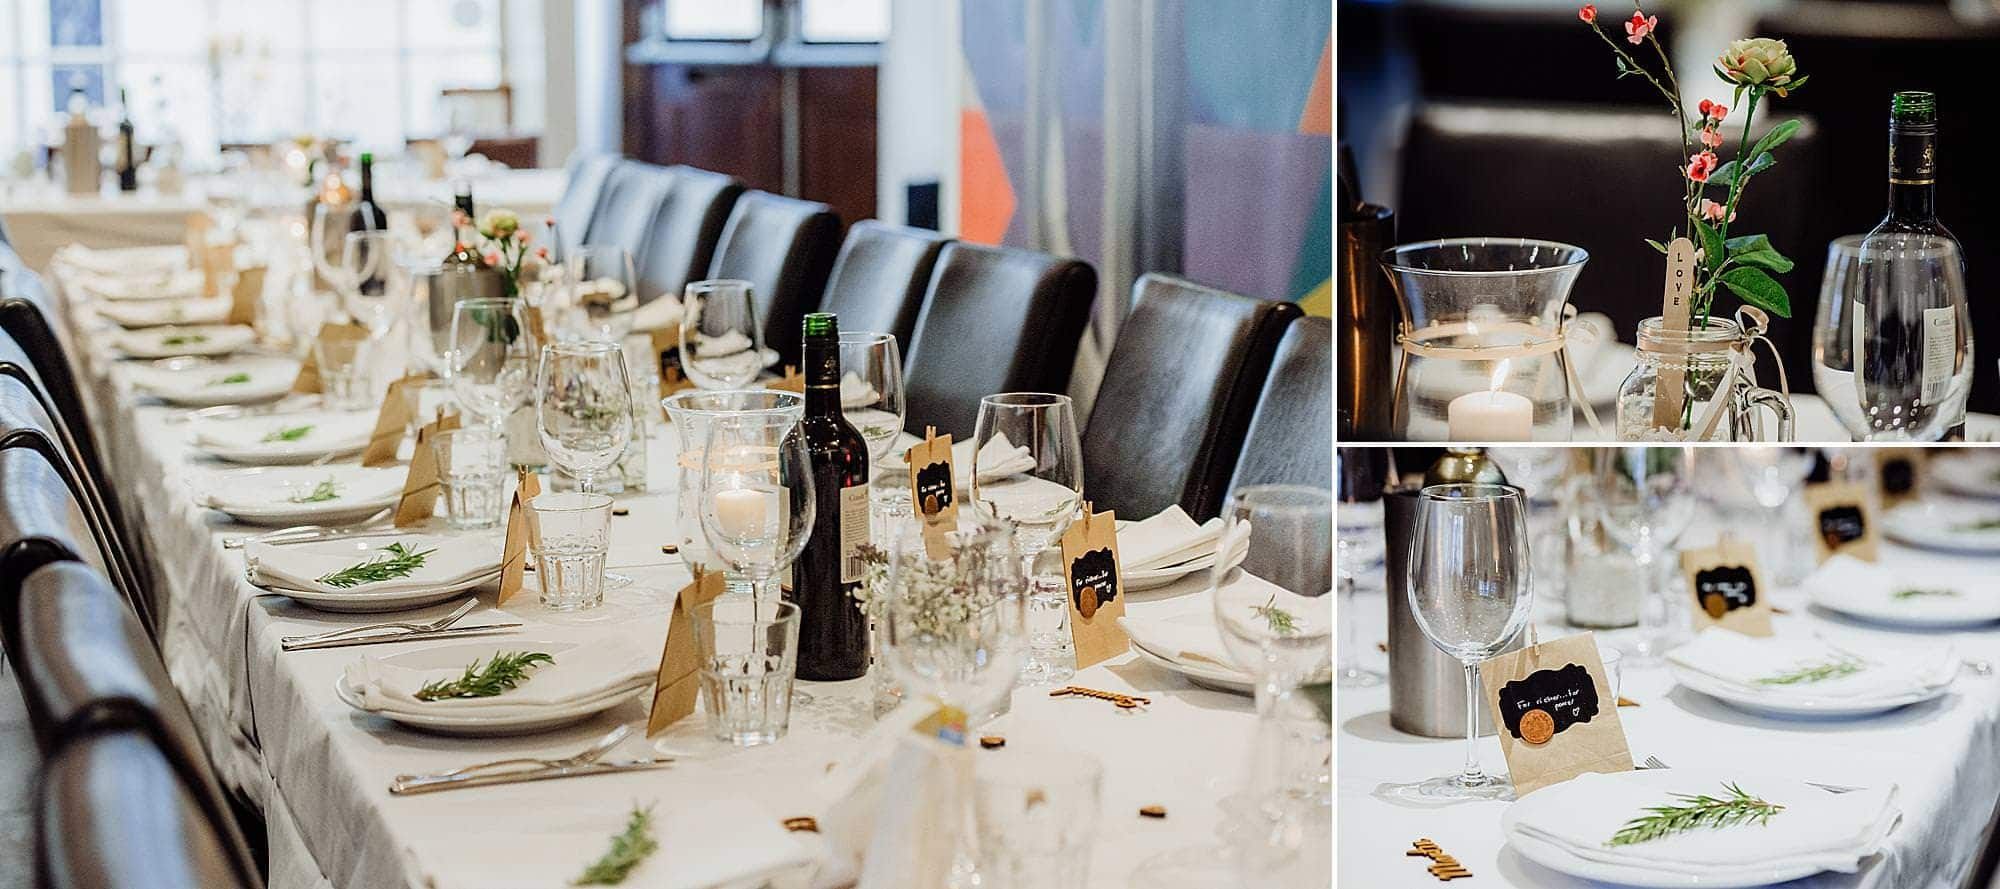 photos of the decorated tables for a wedding reception at the Rummer hotel Bristol